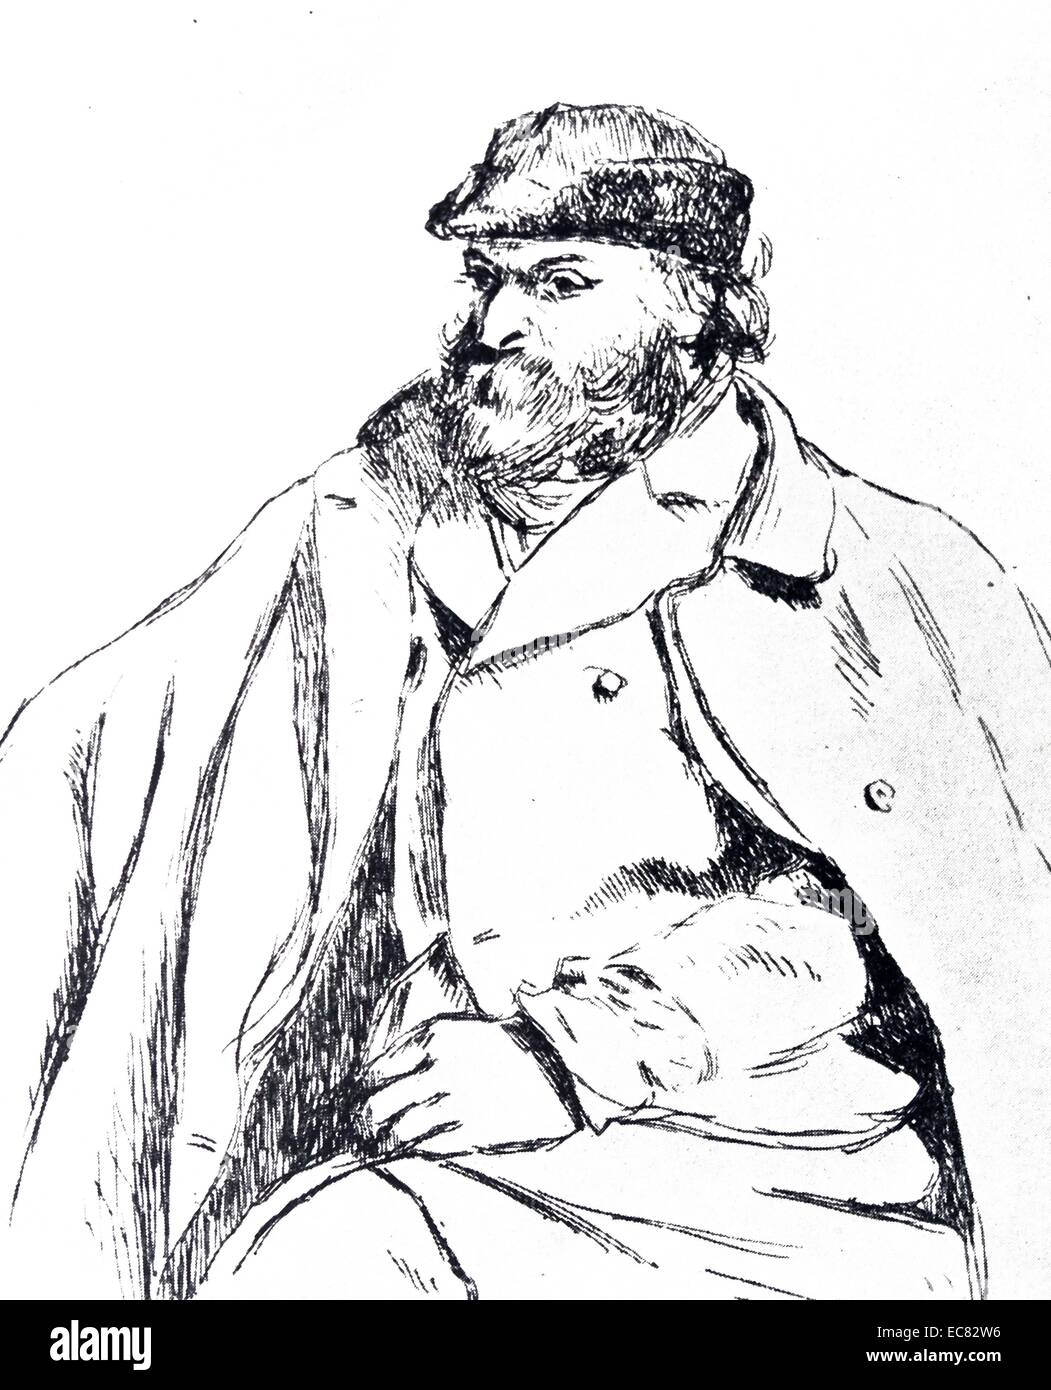 Etching of Paul Cézanne - Stock Image